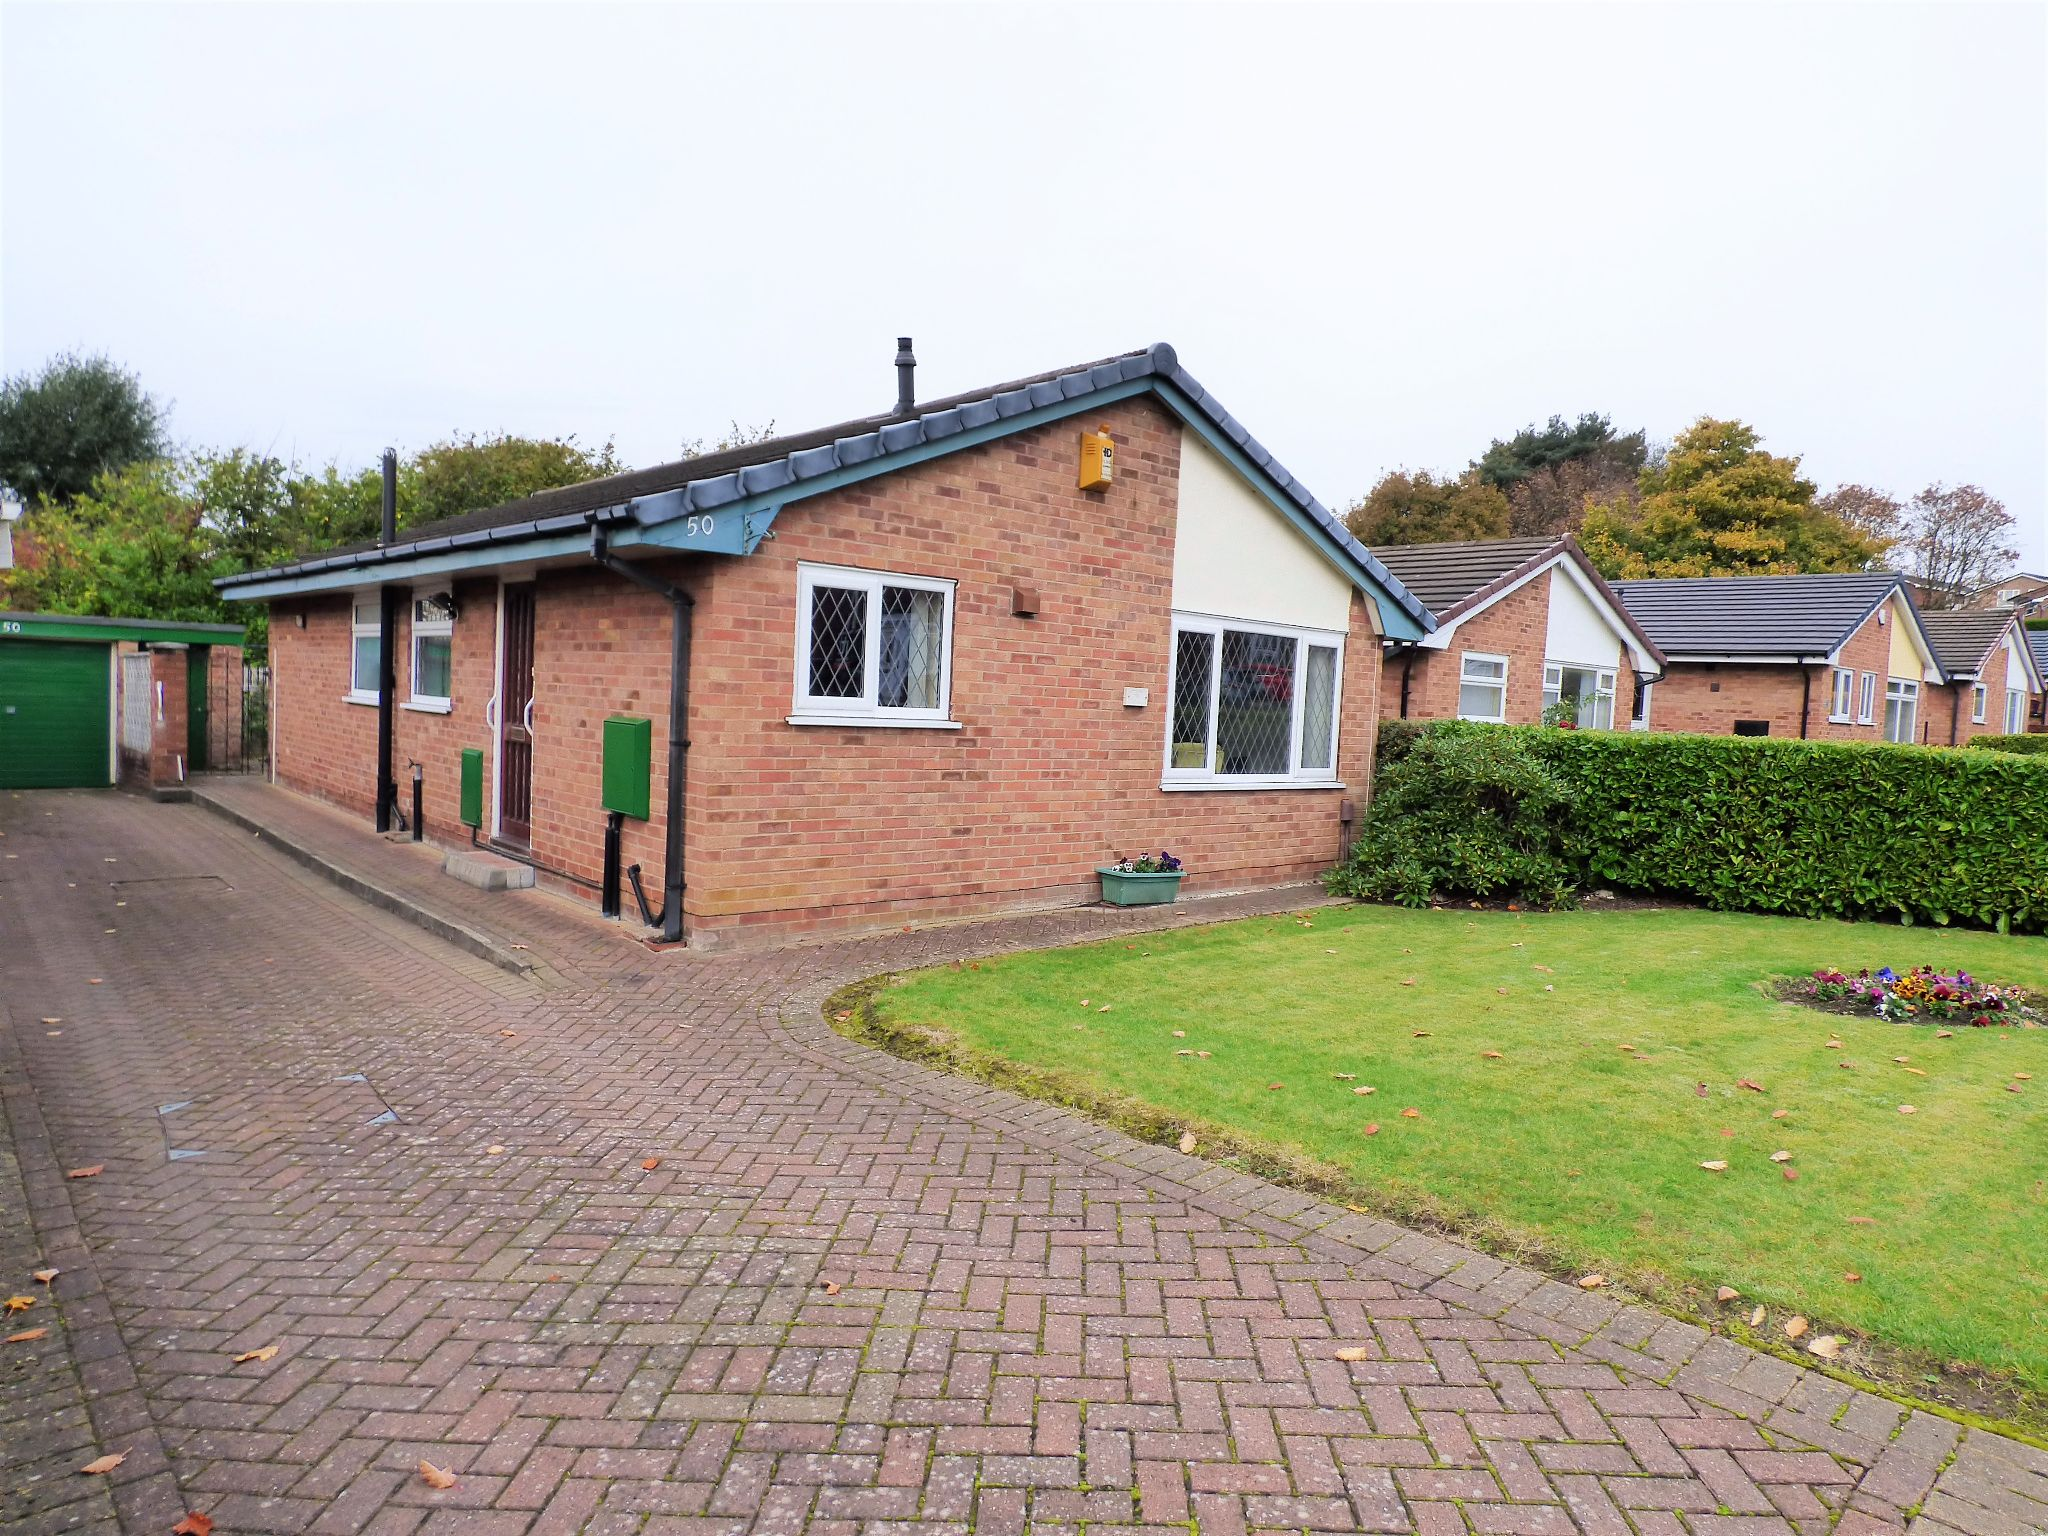 2 Bedroom Detached Bungalow For Sale - Photograph 1